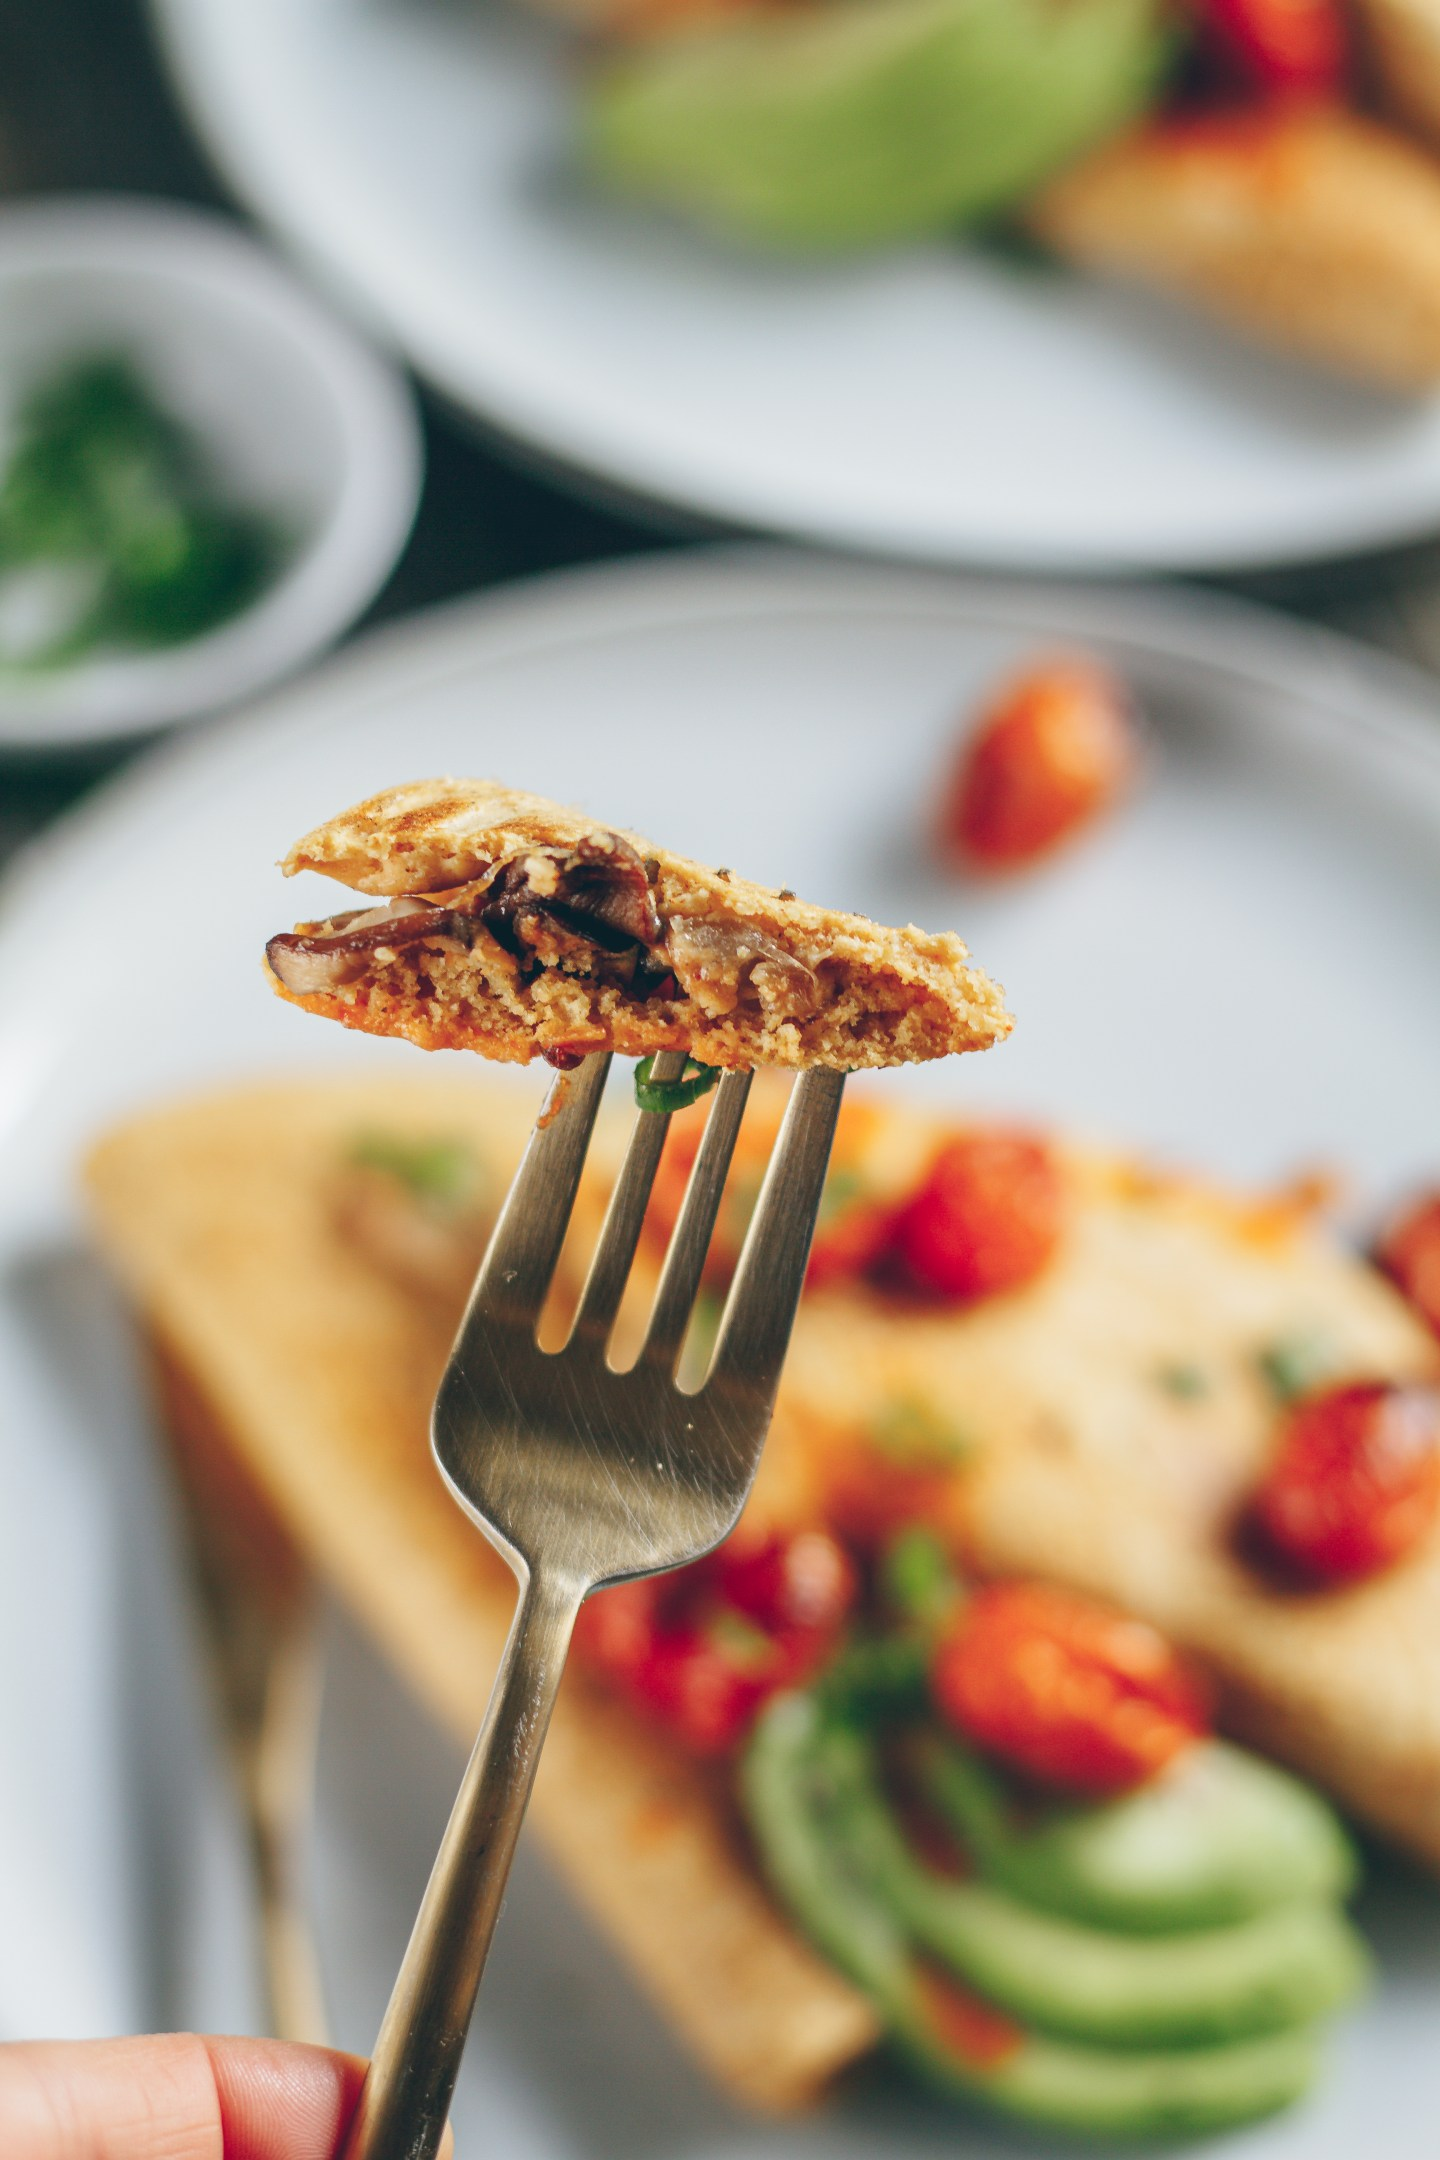 chickpea omelette with caramelized onion and mushrooms